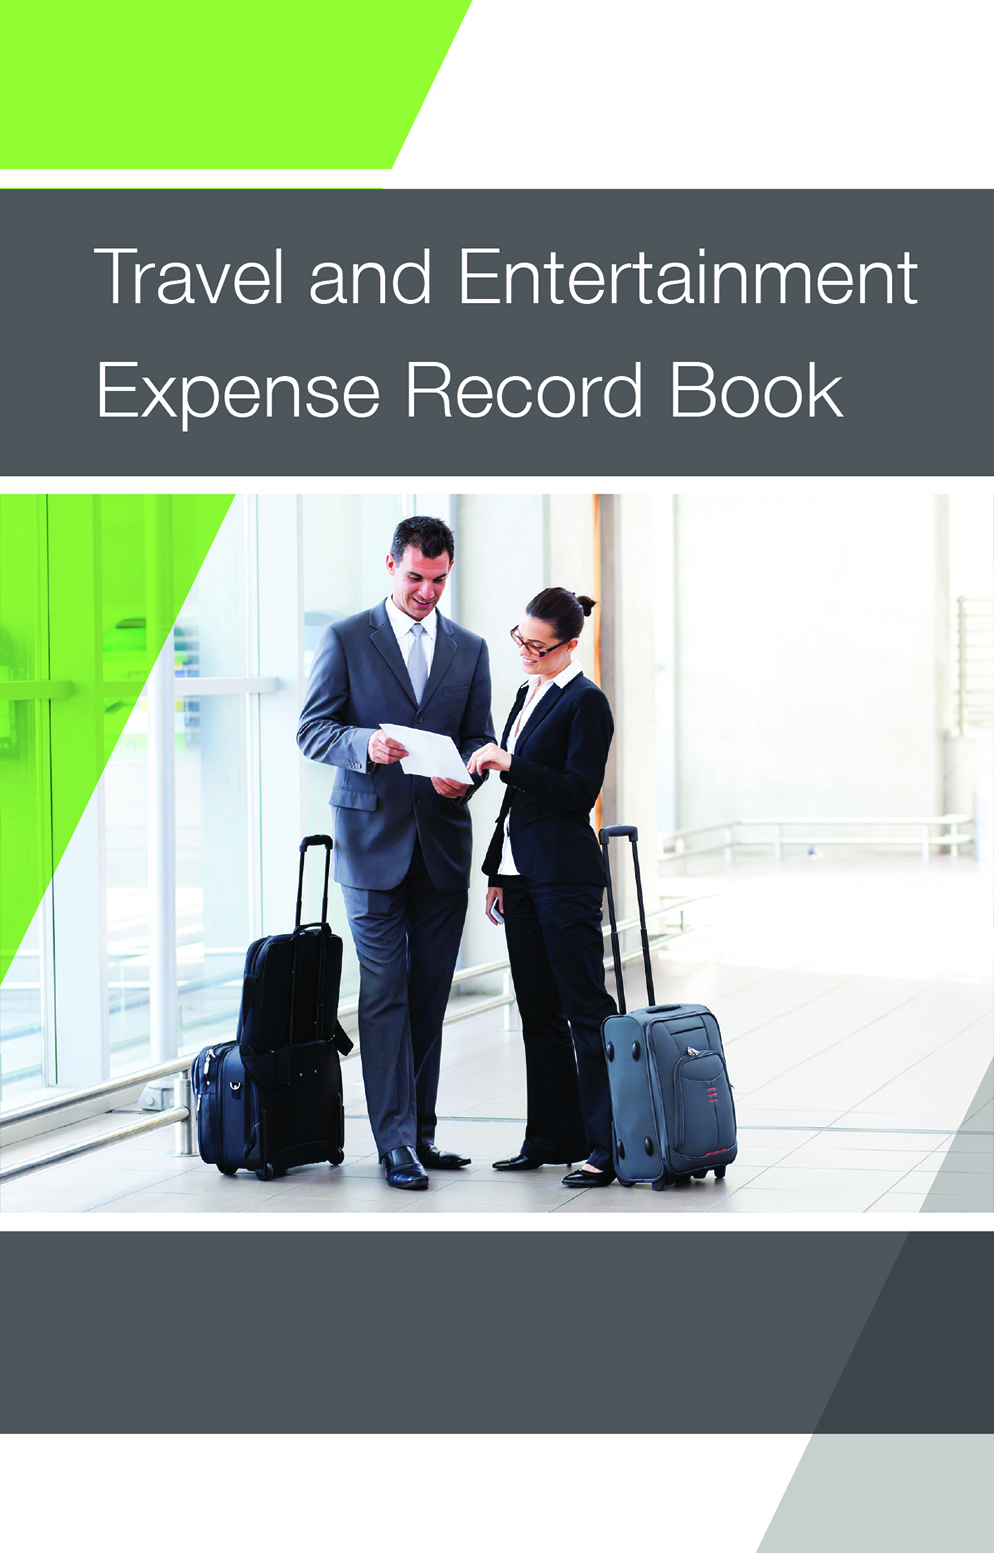 Travel and Entertainment Expense Record Book - #605